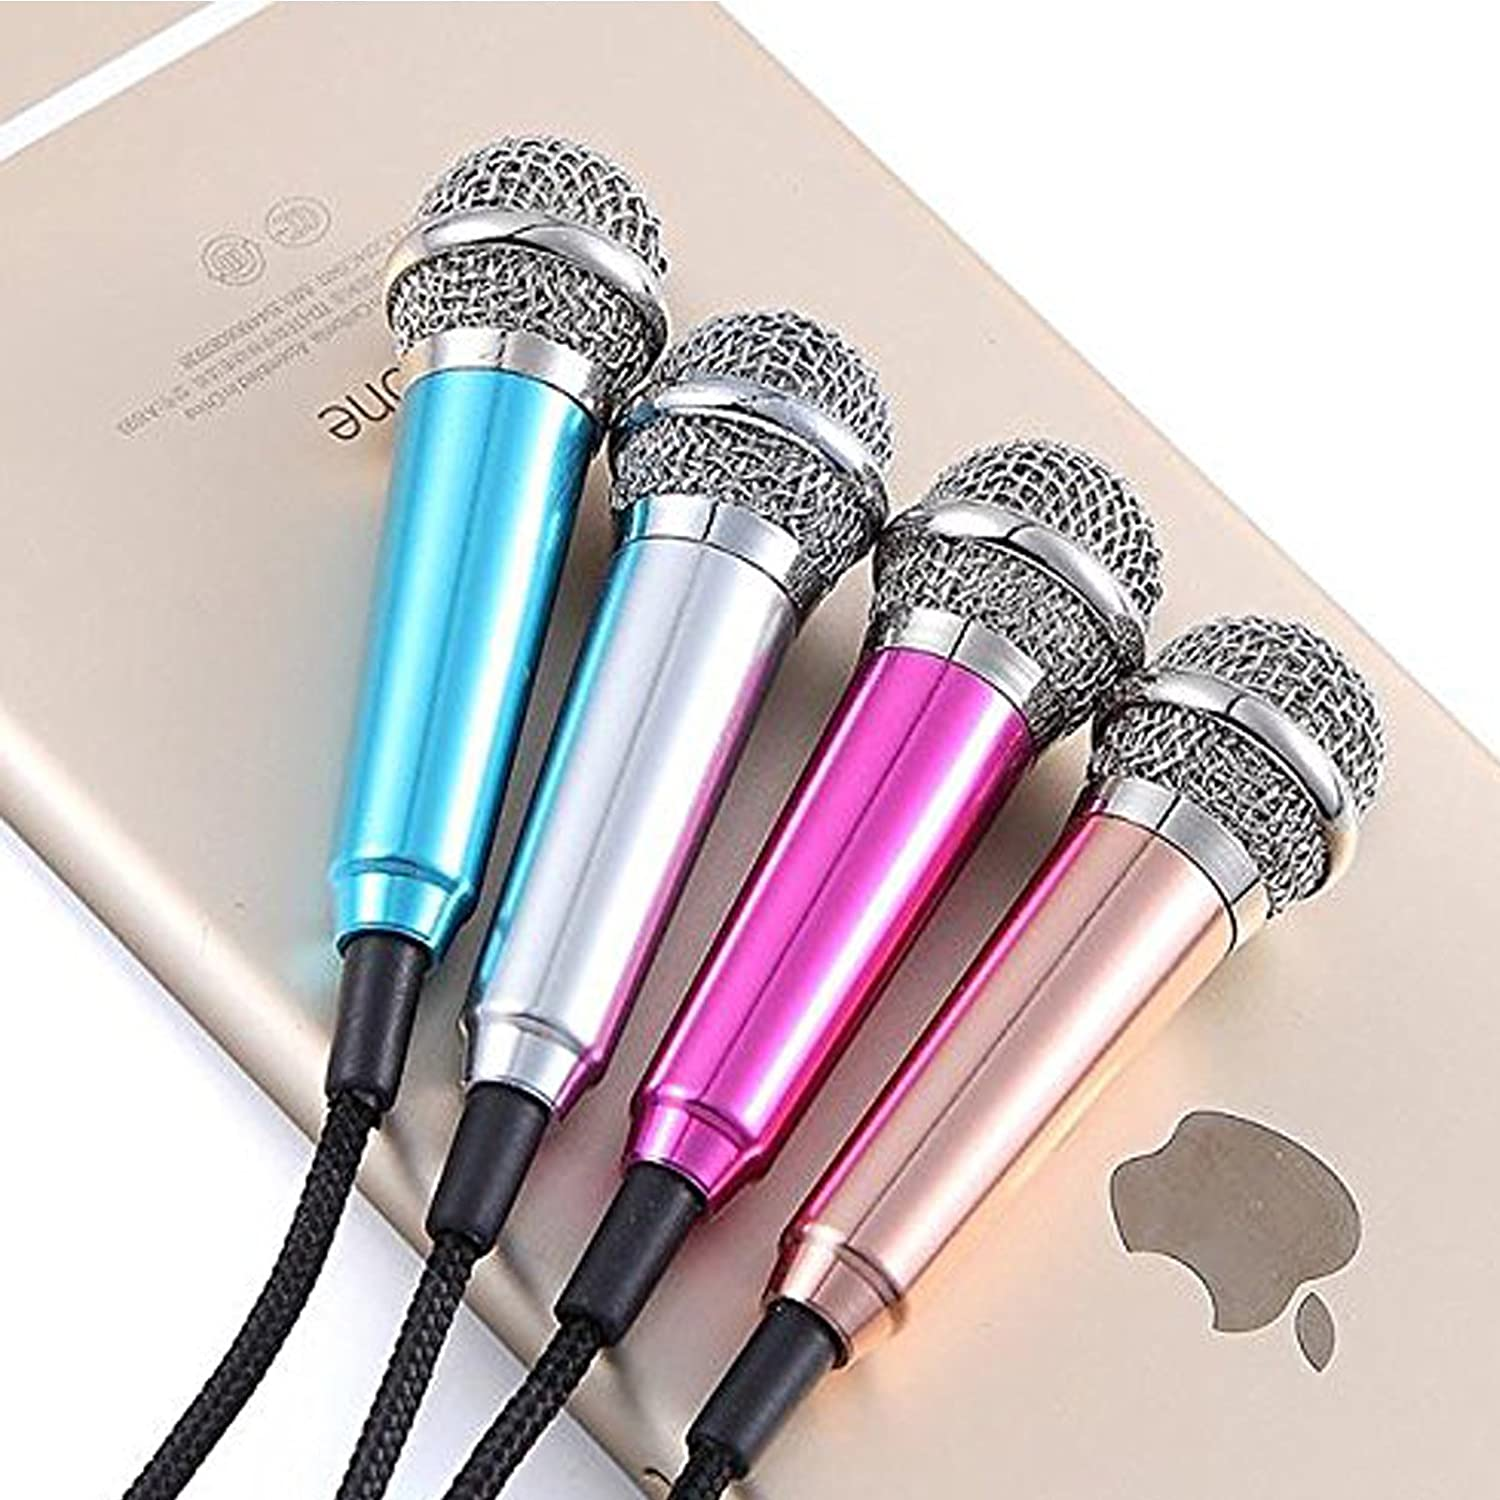 Ascension Smart Phone Mini 3 5mm Pocket Size Microphone For Pc Mobile Mini Microphone Android Iphone Mobile Phone Computer Mobile Phone Sing Karaoke Color May Vary Amazon In Musical Instruments